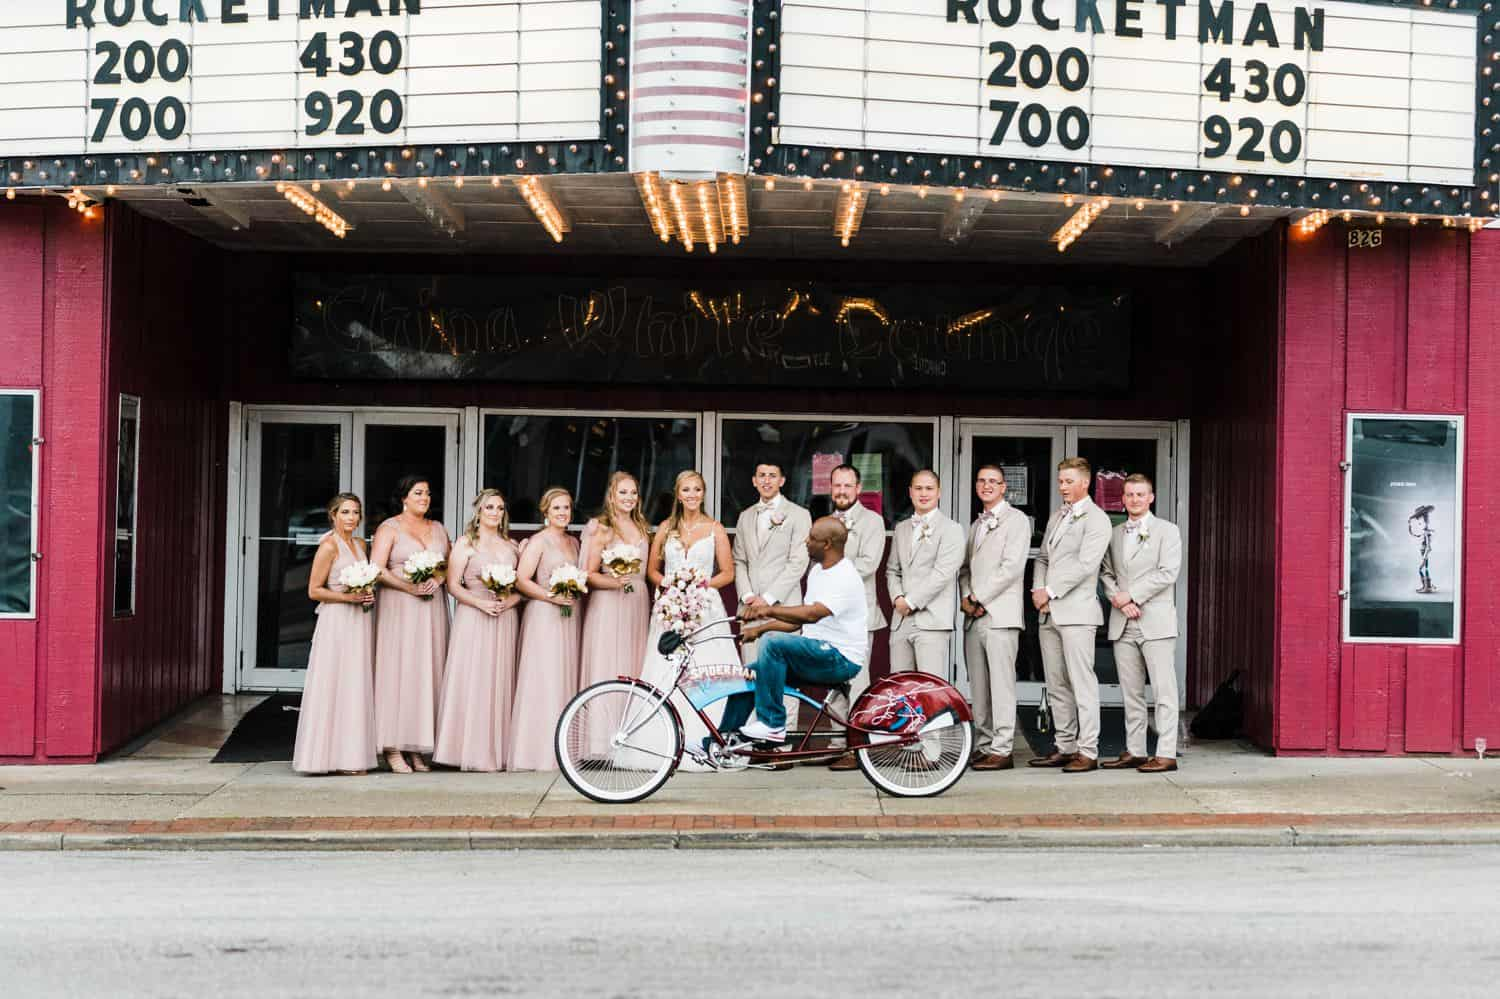 A wedding party poses beneath a theater marquee as a man rides by on his bike.